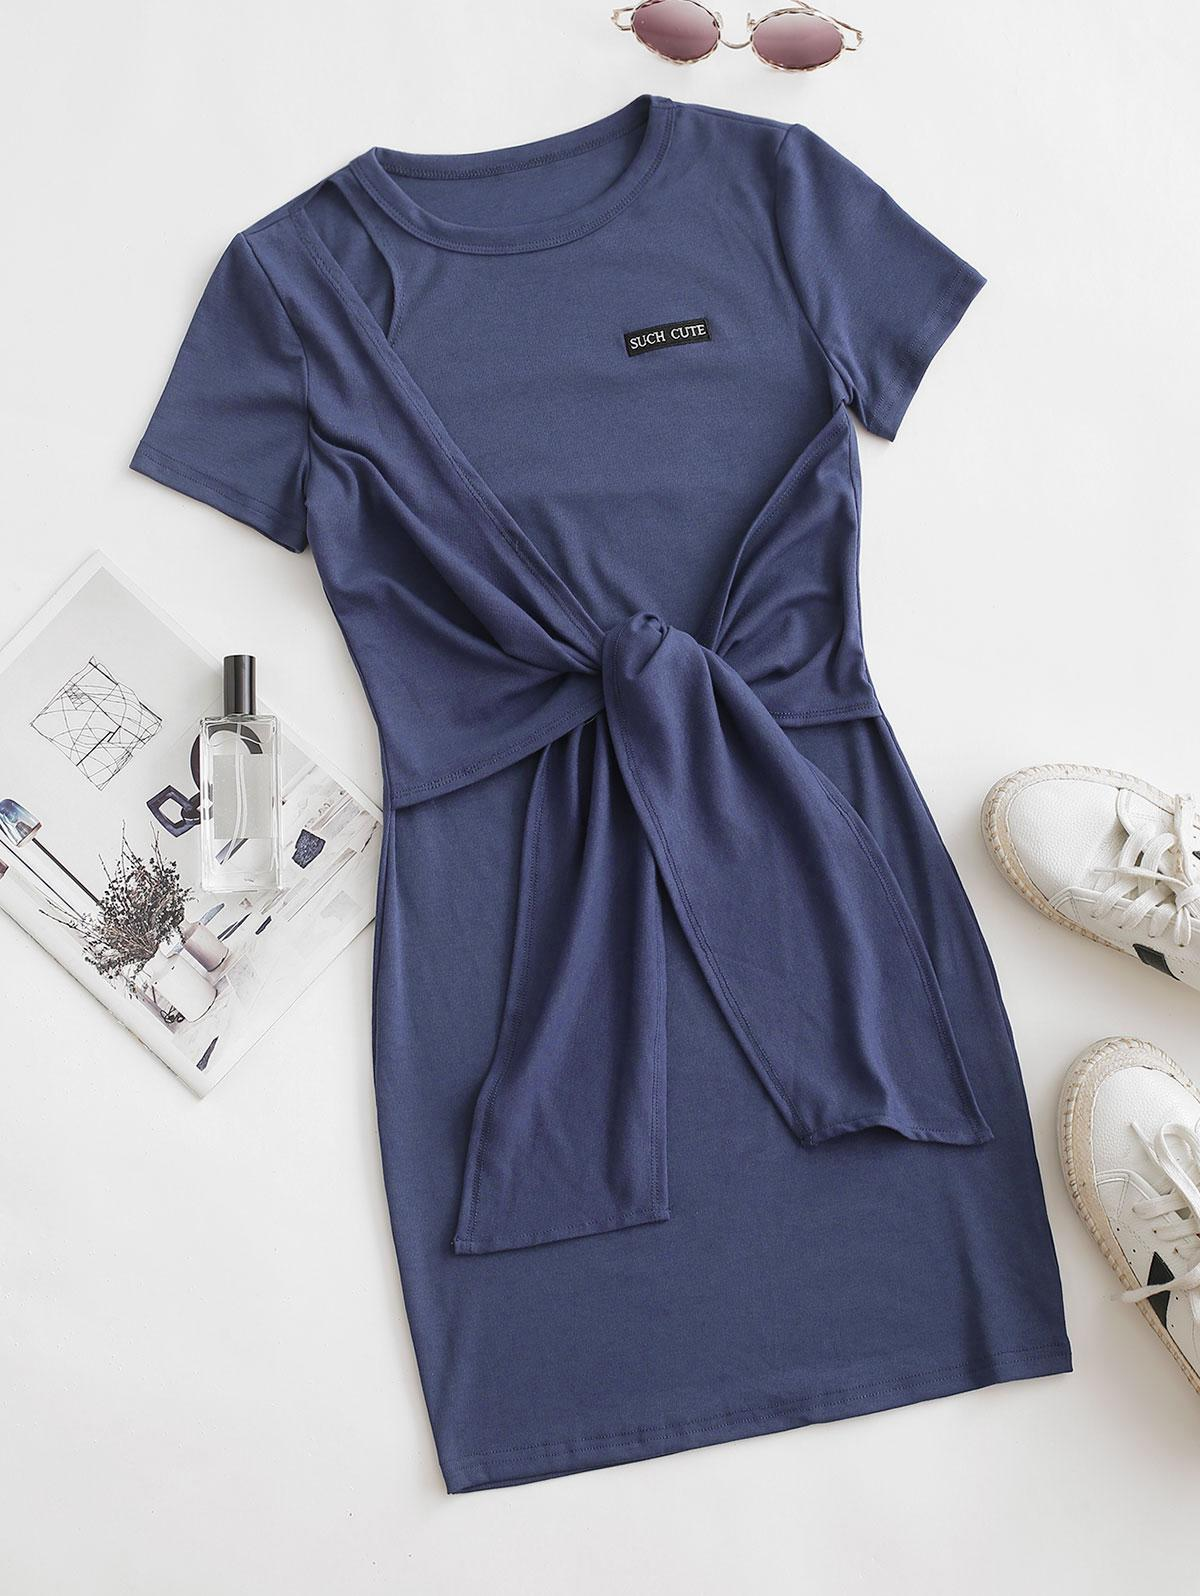 Such Cute Embroidered Tie Front Tee Dress